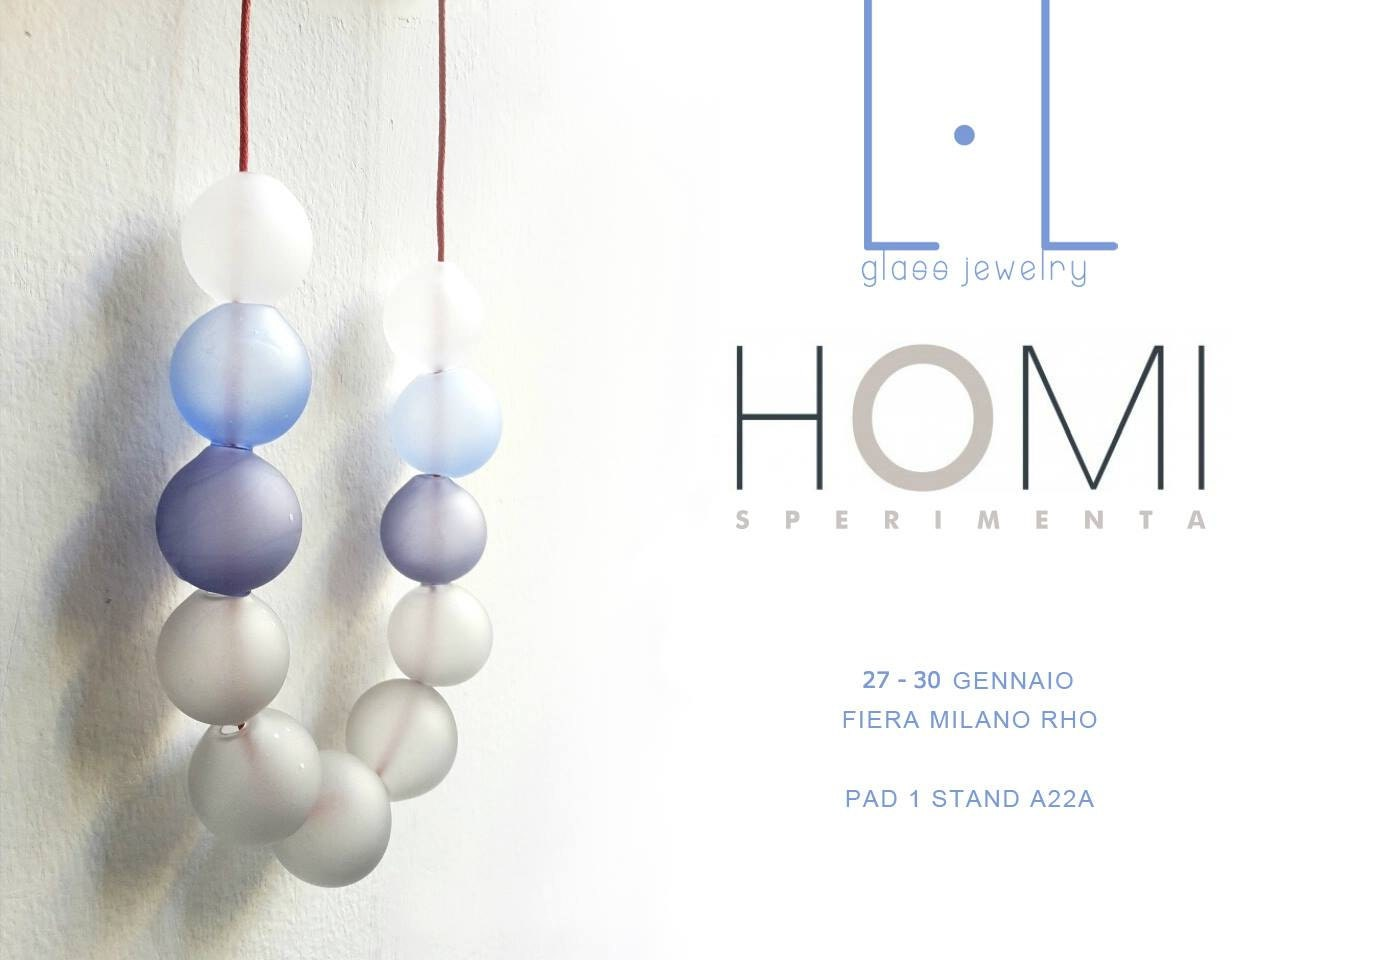 We are pleased to announce that from 27 to 30 january we will be present in the most important Italian exhibition. In SPERIMENTA HOMI Milano. HOMI SPERIMENTA presents a top-quality selection of products, brands and designers Involved in research, testing and self-production. Homi Sperimenta Fashion & Jewels is the focal point for all products which revolve around fashion and jewels. Self-productions and new creations made with environmentally friendly materials, recycled material from machines and machine parts, fashioned into unique, innovative products, to be worn as accessories or for practical use.